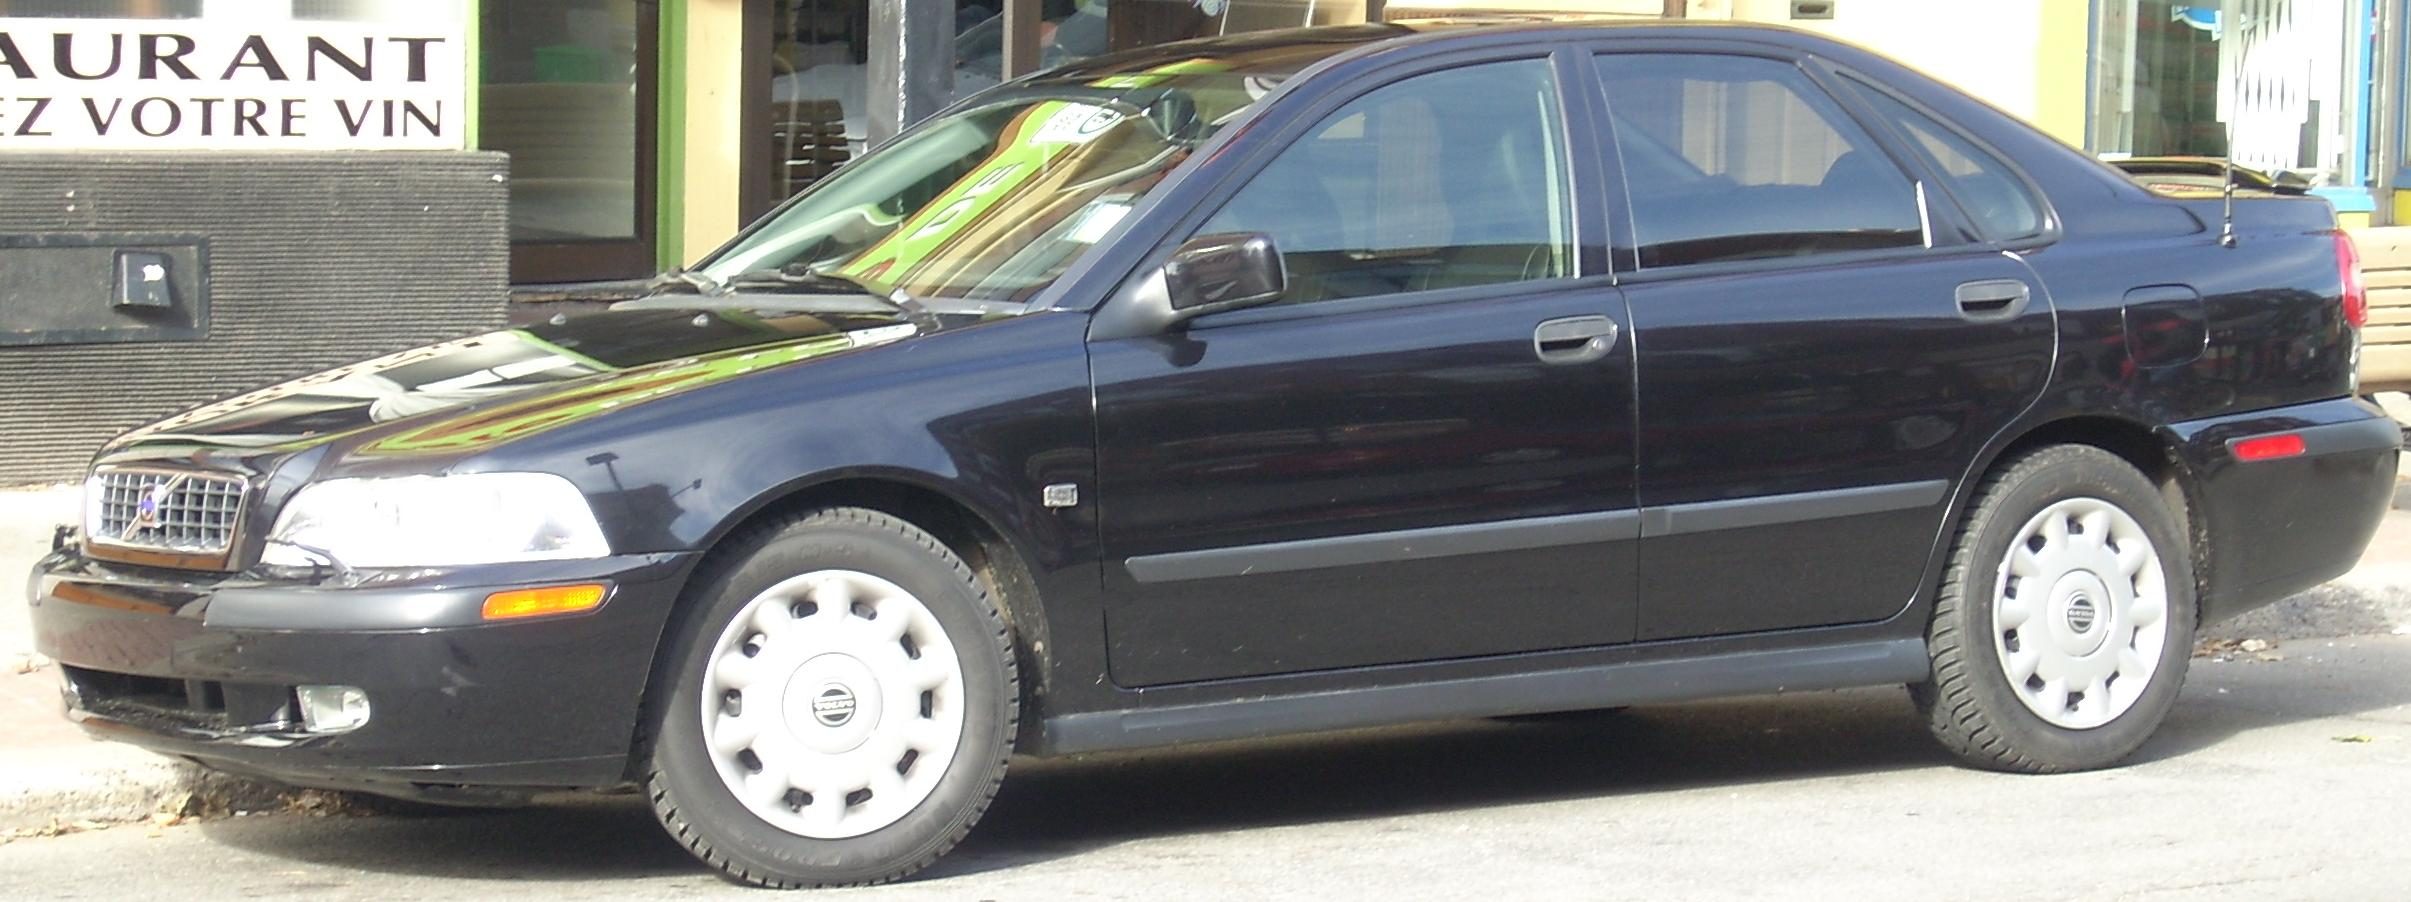 File:'00-'01 Volvo S40.jpg - Wikimedia Commons